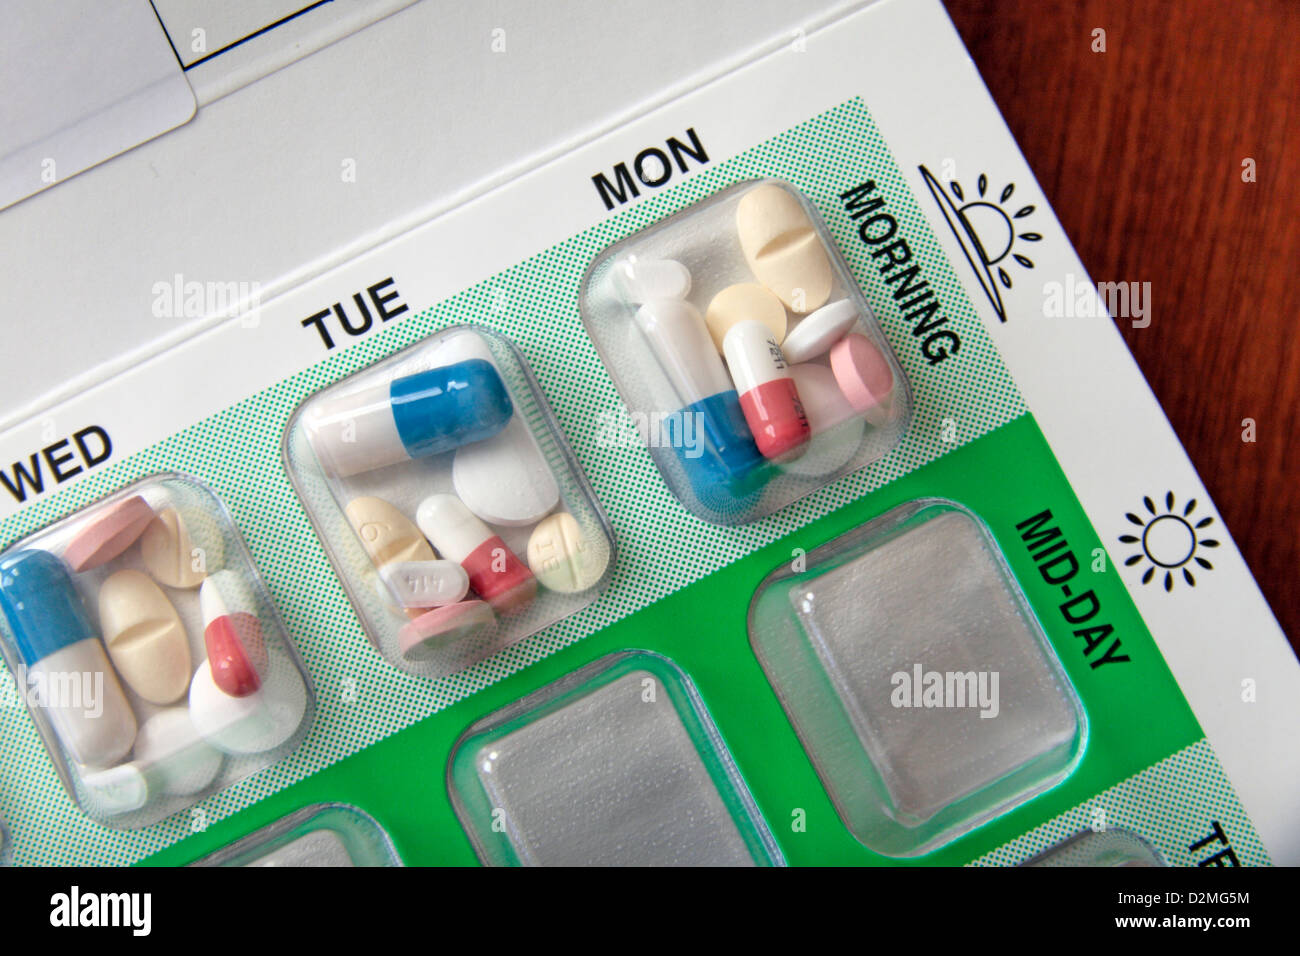 A National Health Service (NHS) medicine blister pack used by those who need to take several pills at different - Stock Image